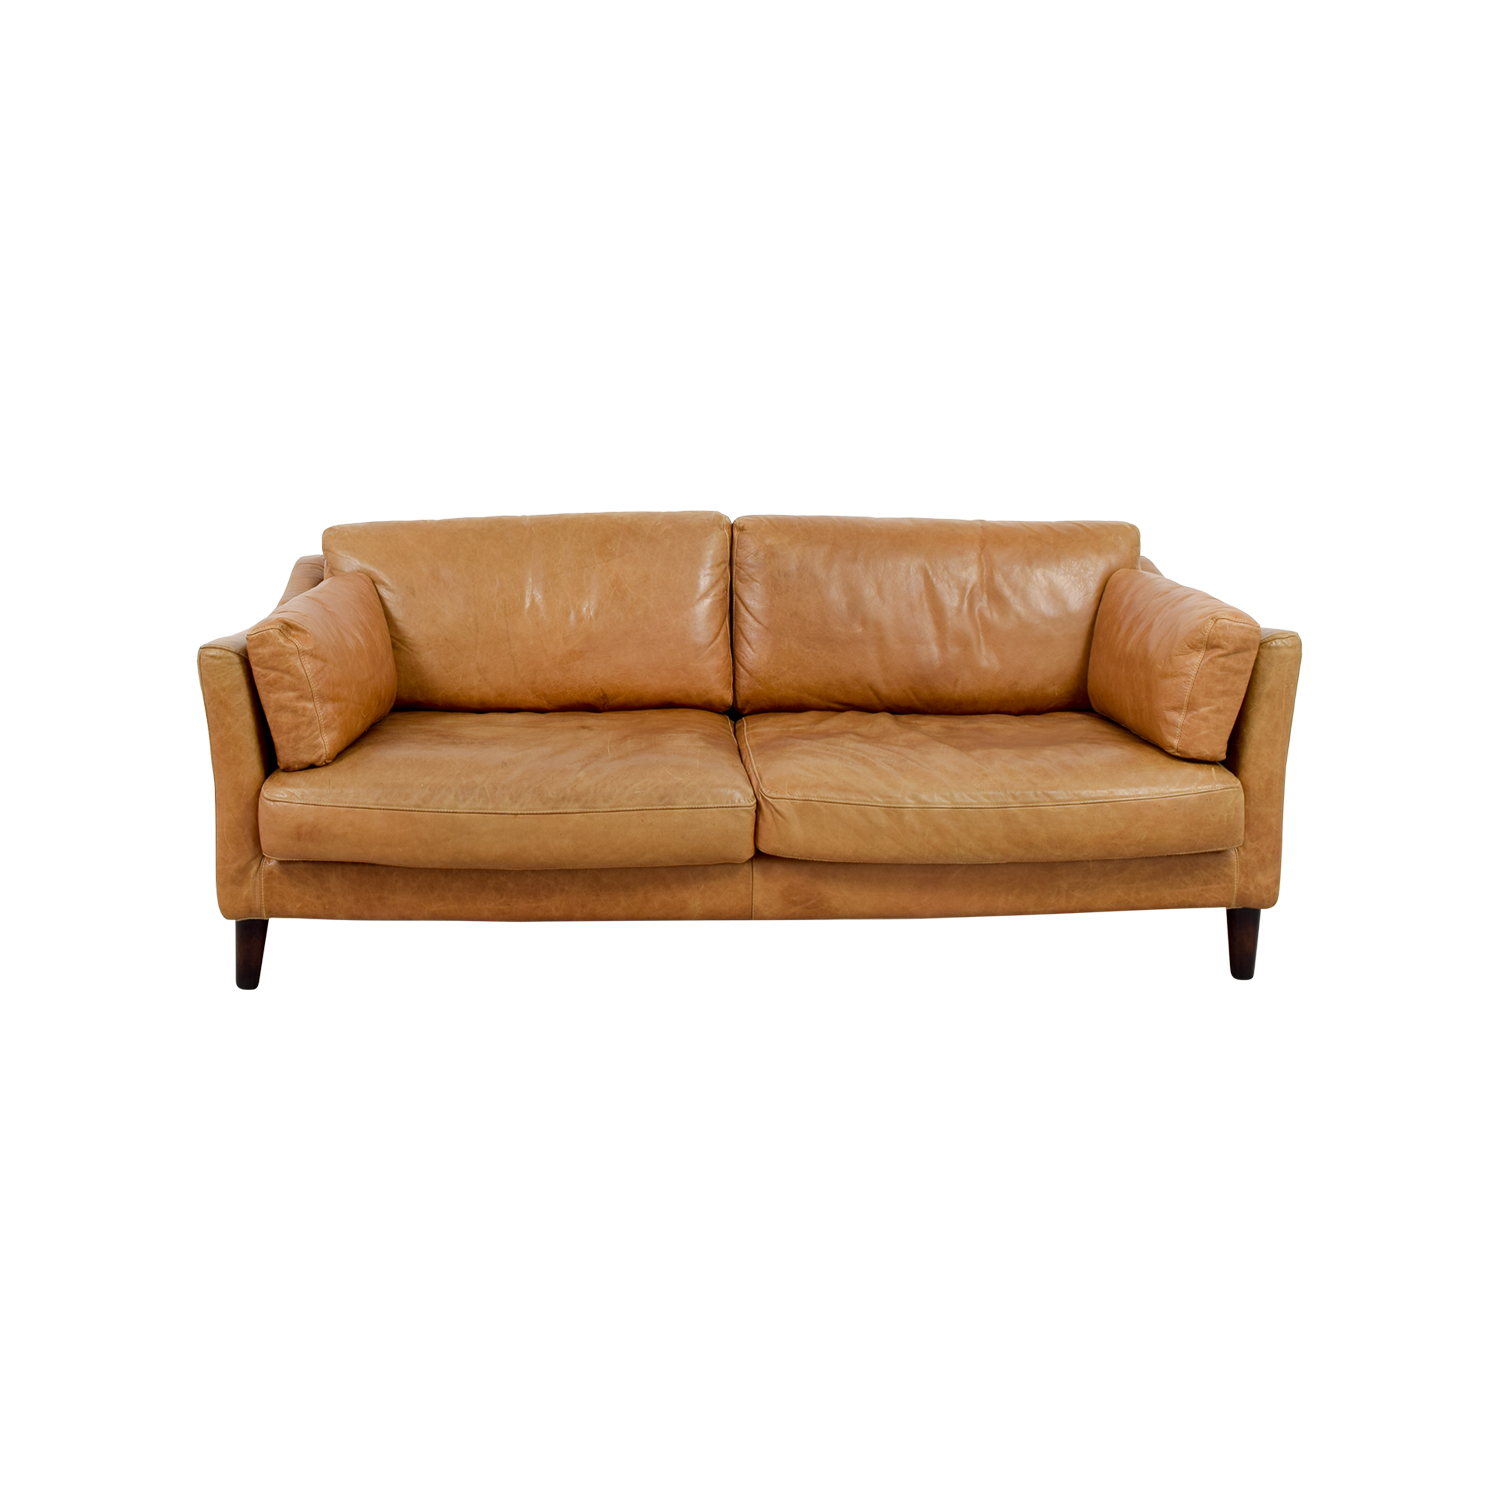 Marina Homes Marina Homes Leather Sofa Sofas